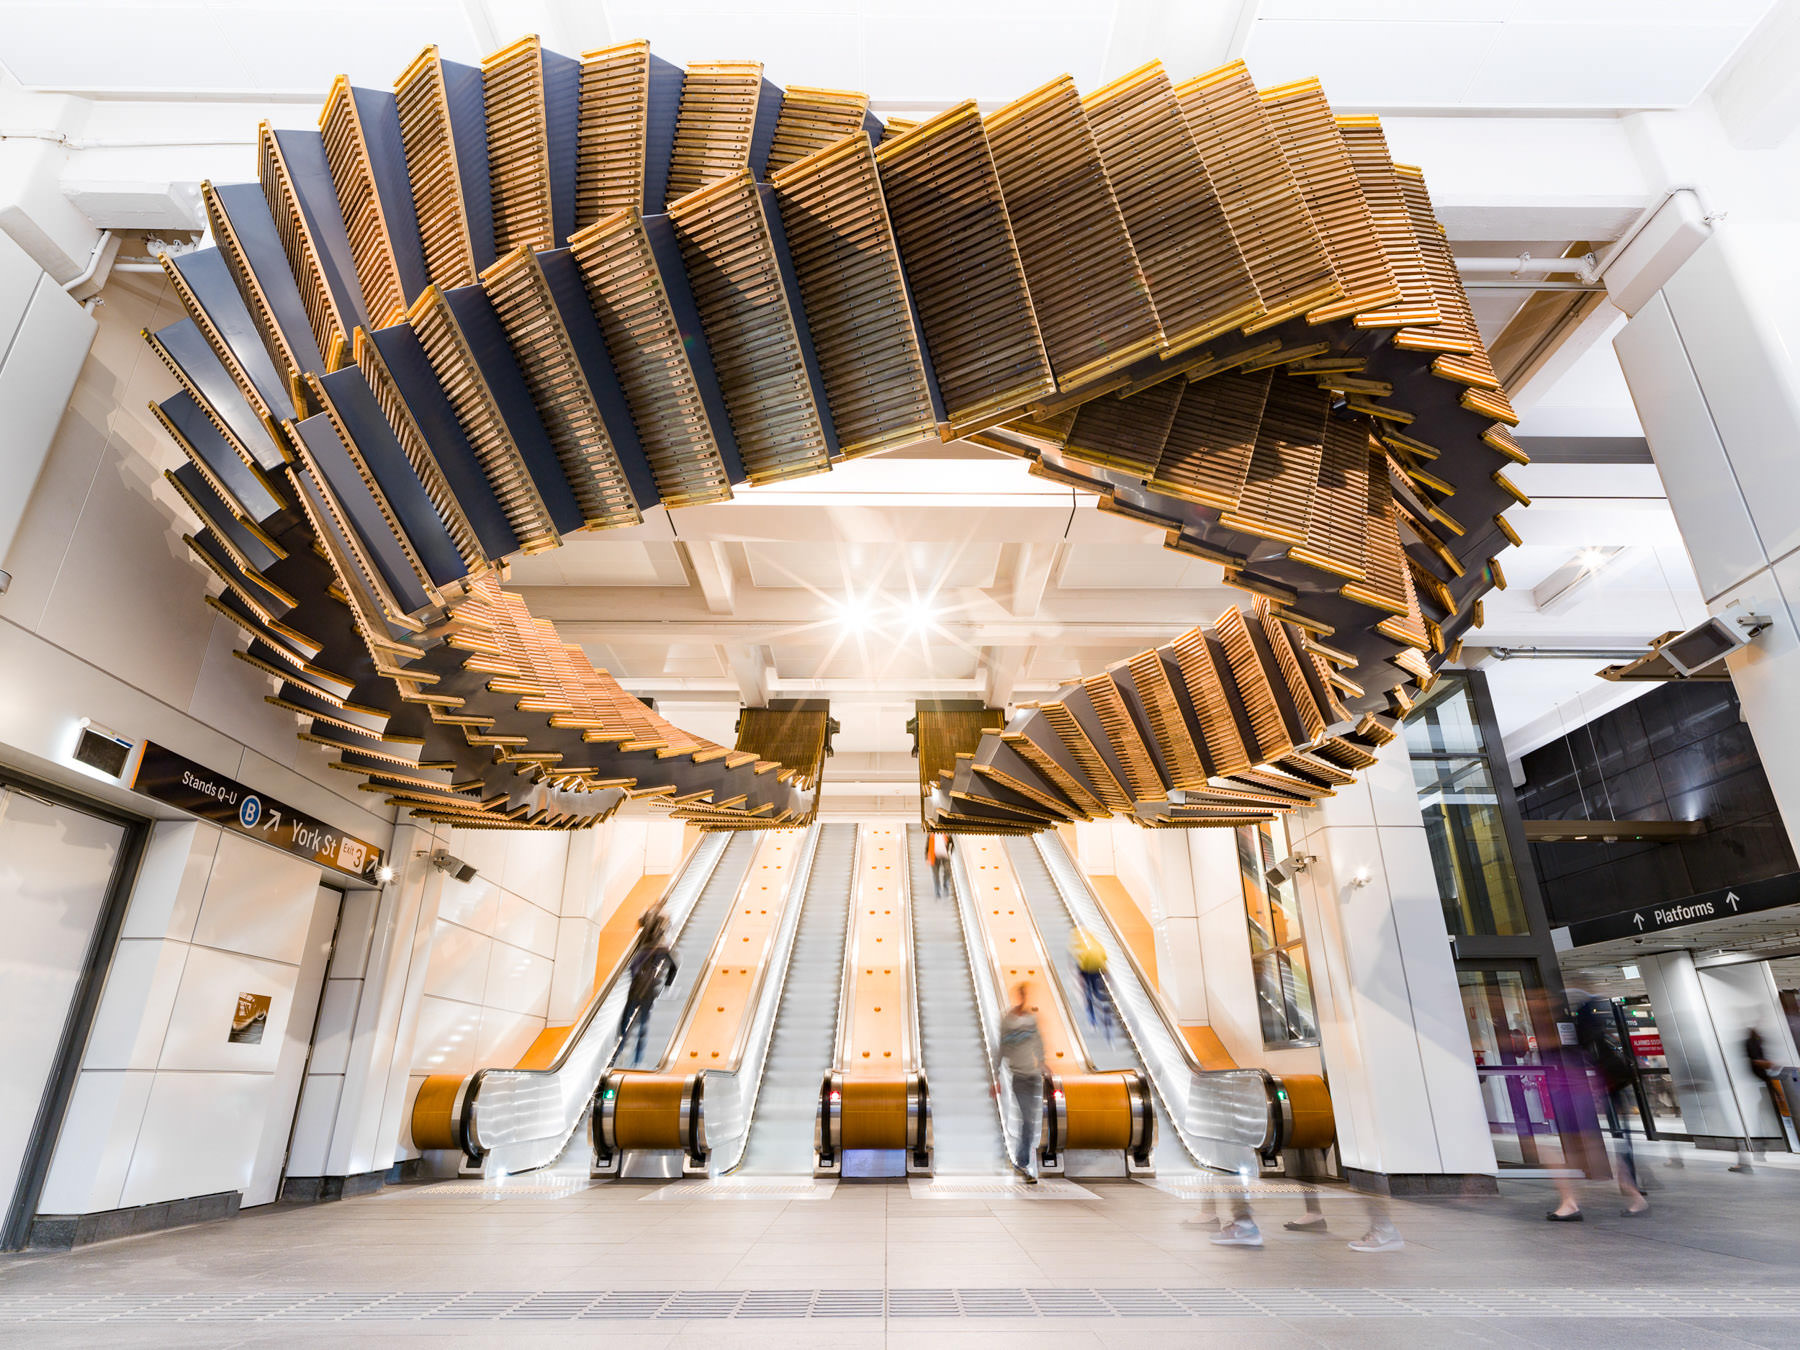 80-Year-Old Wooden Escalators are Repurposed as a Sculptural Ribbon by Artist Chris Fox